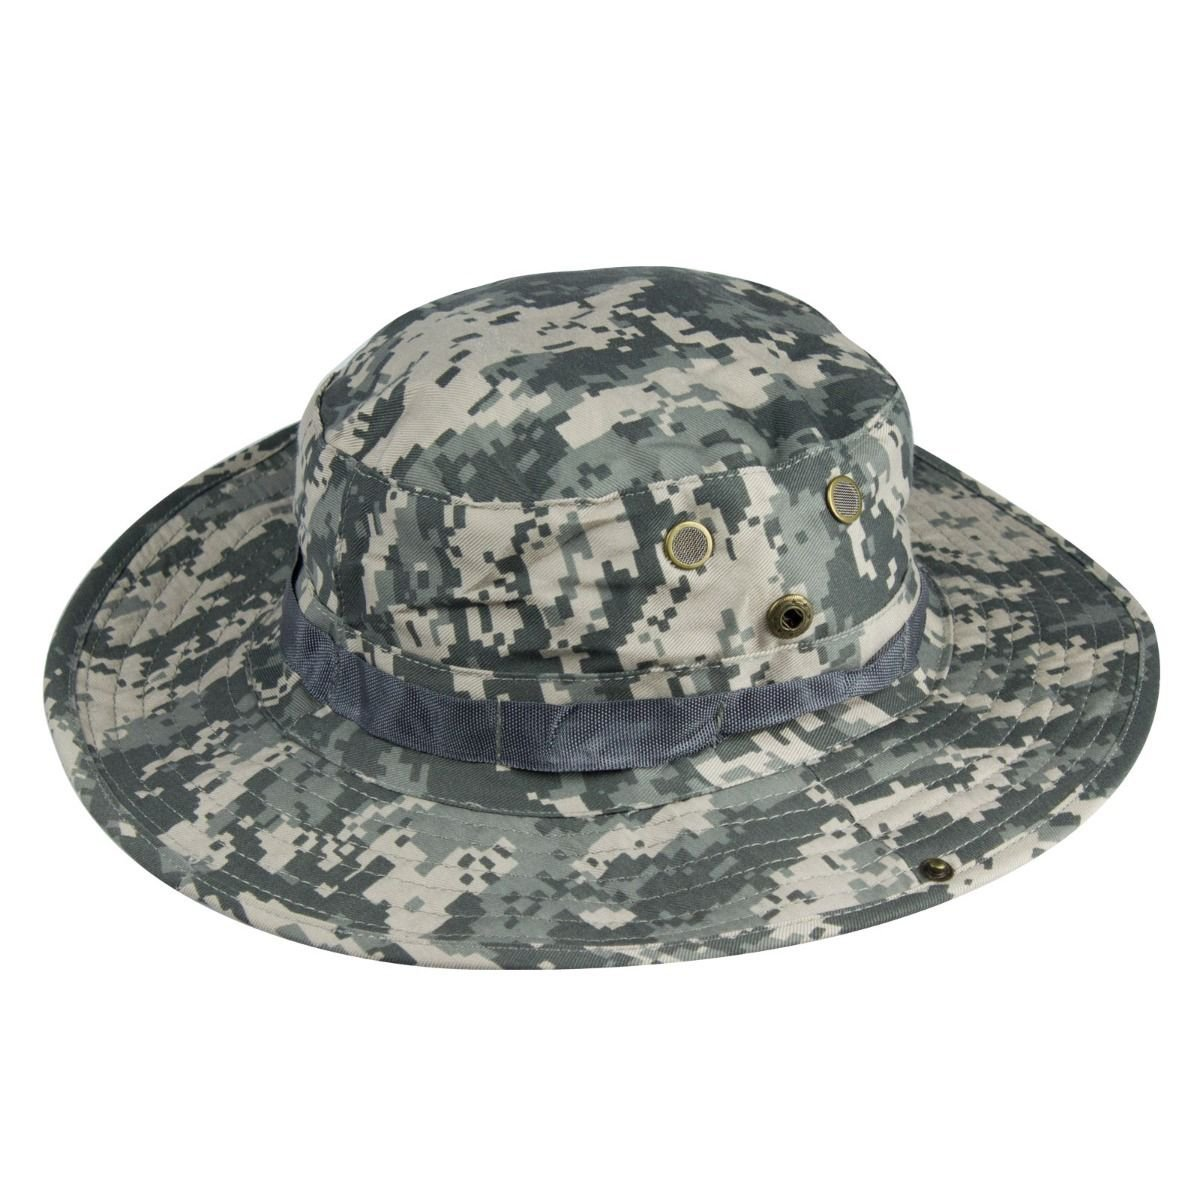 Infantry Militray Camoflage Boonie-Bush Hat Patrol Combat Army Ripstop Filed Cap